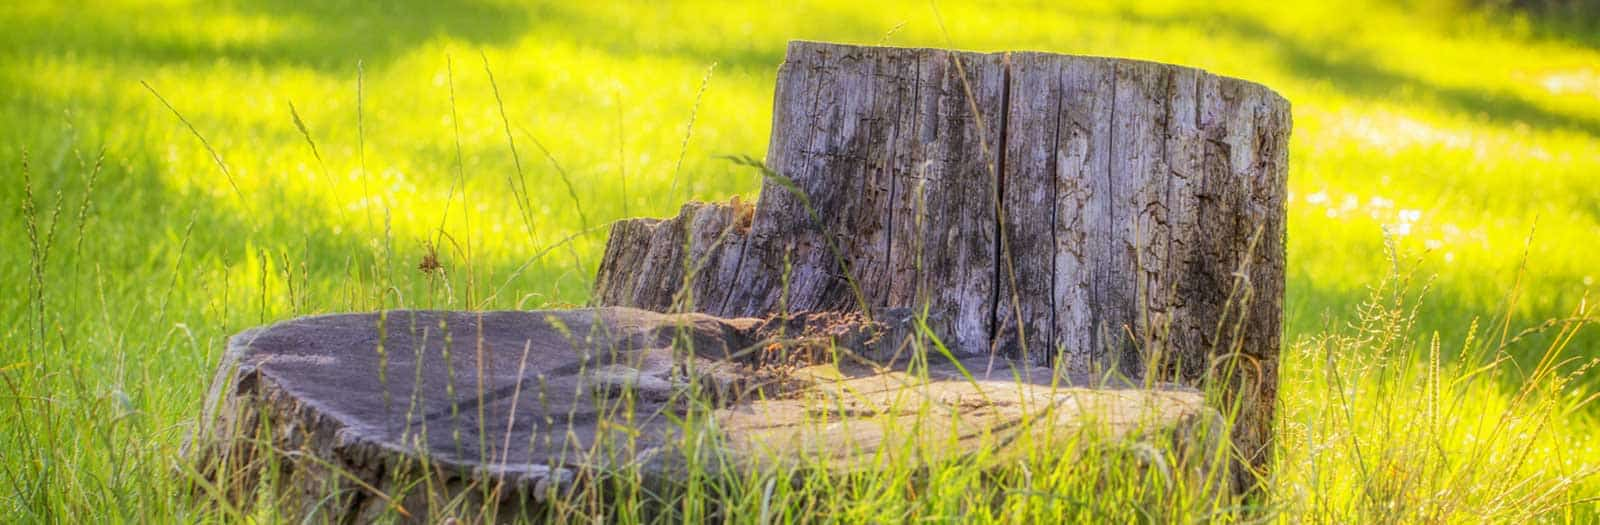 tree stump sticking out of a patch of sunlit grass